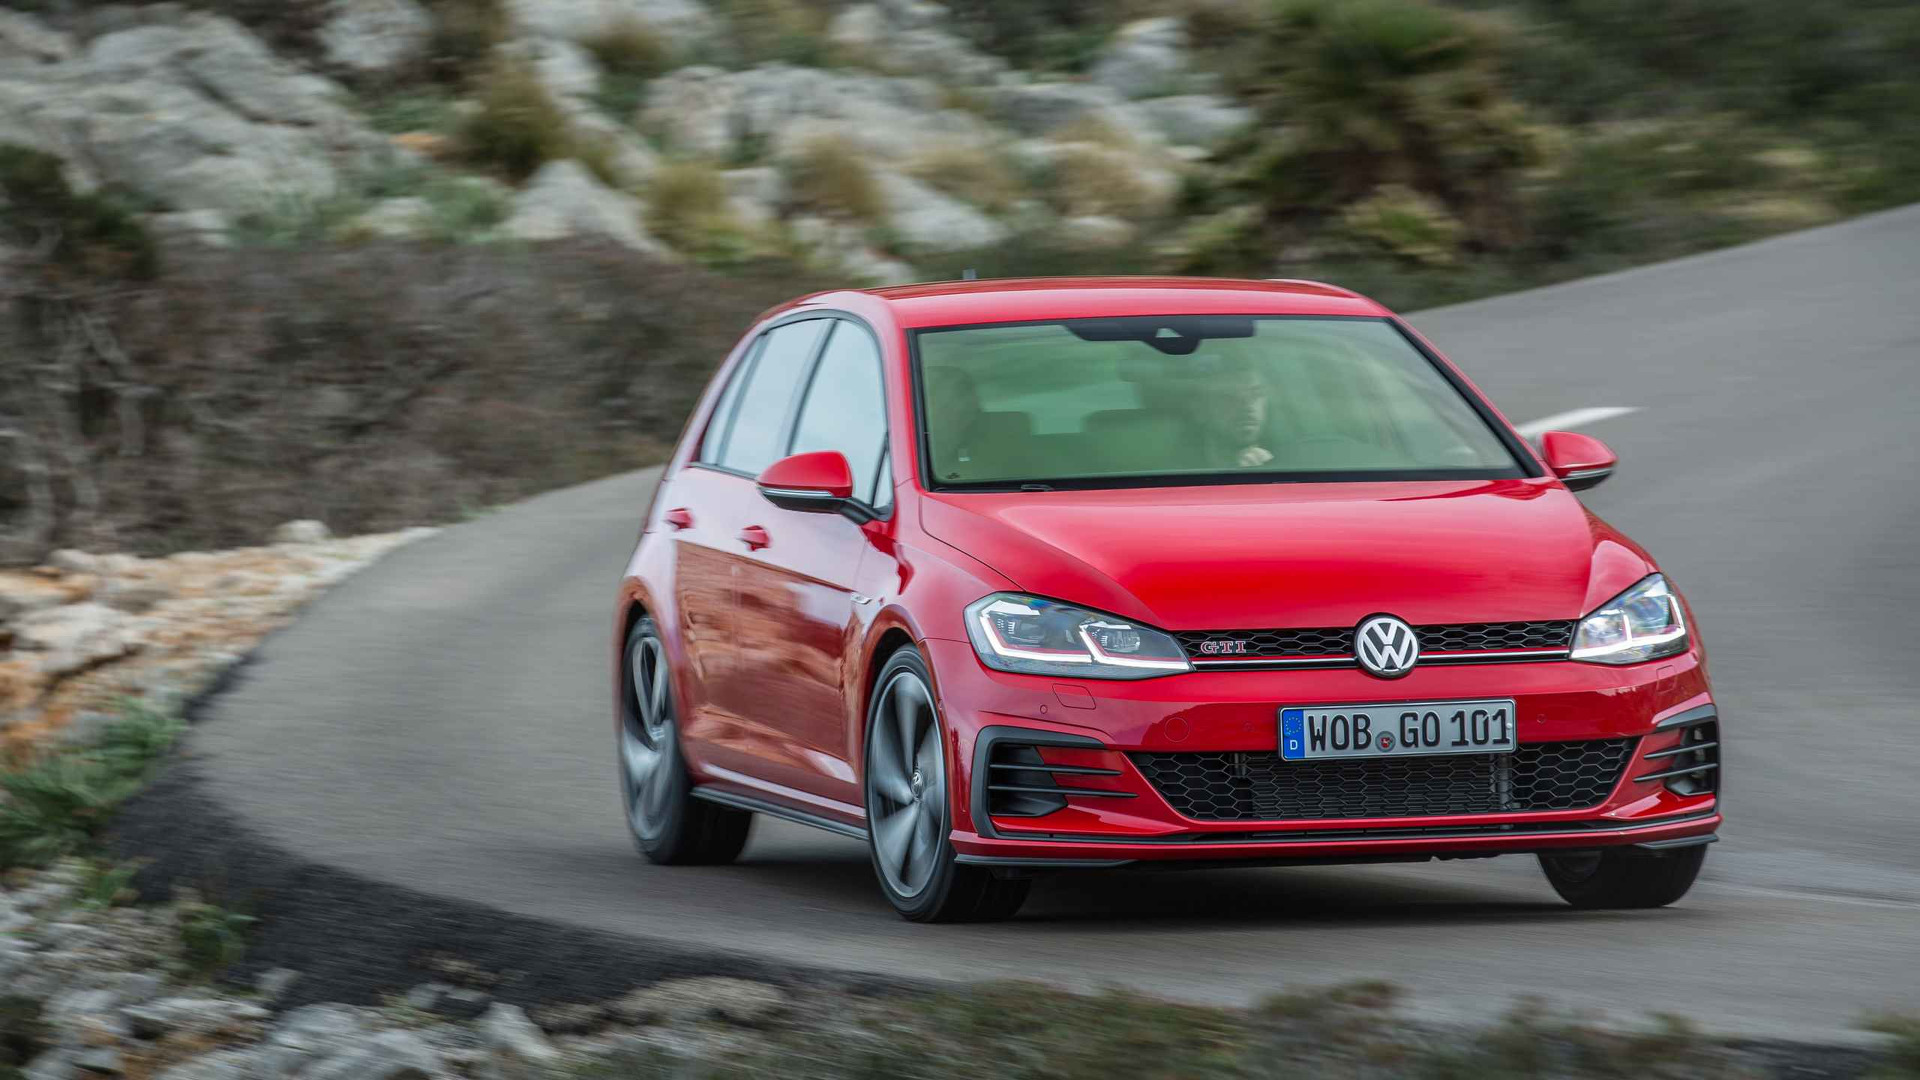 Volkswagen Golf GTI vs R: Which Should You Buy?